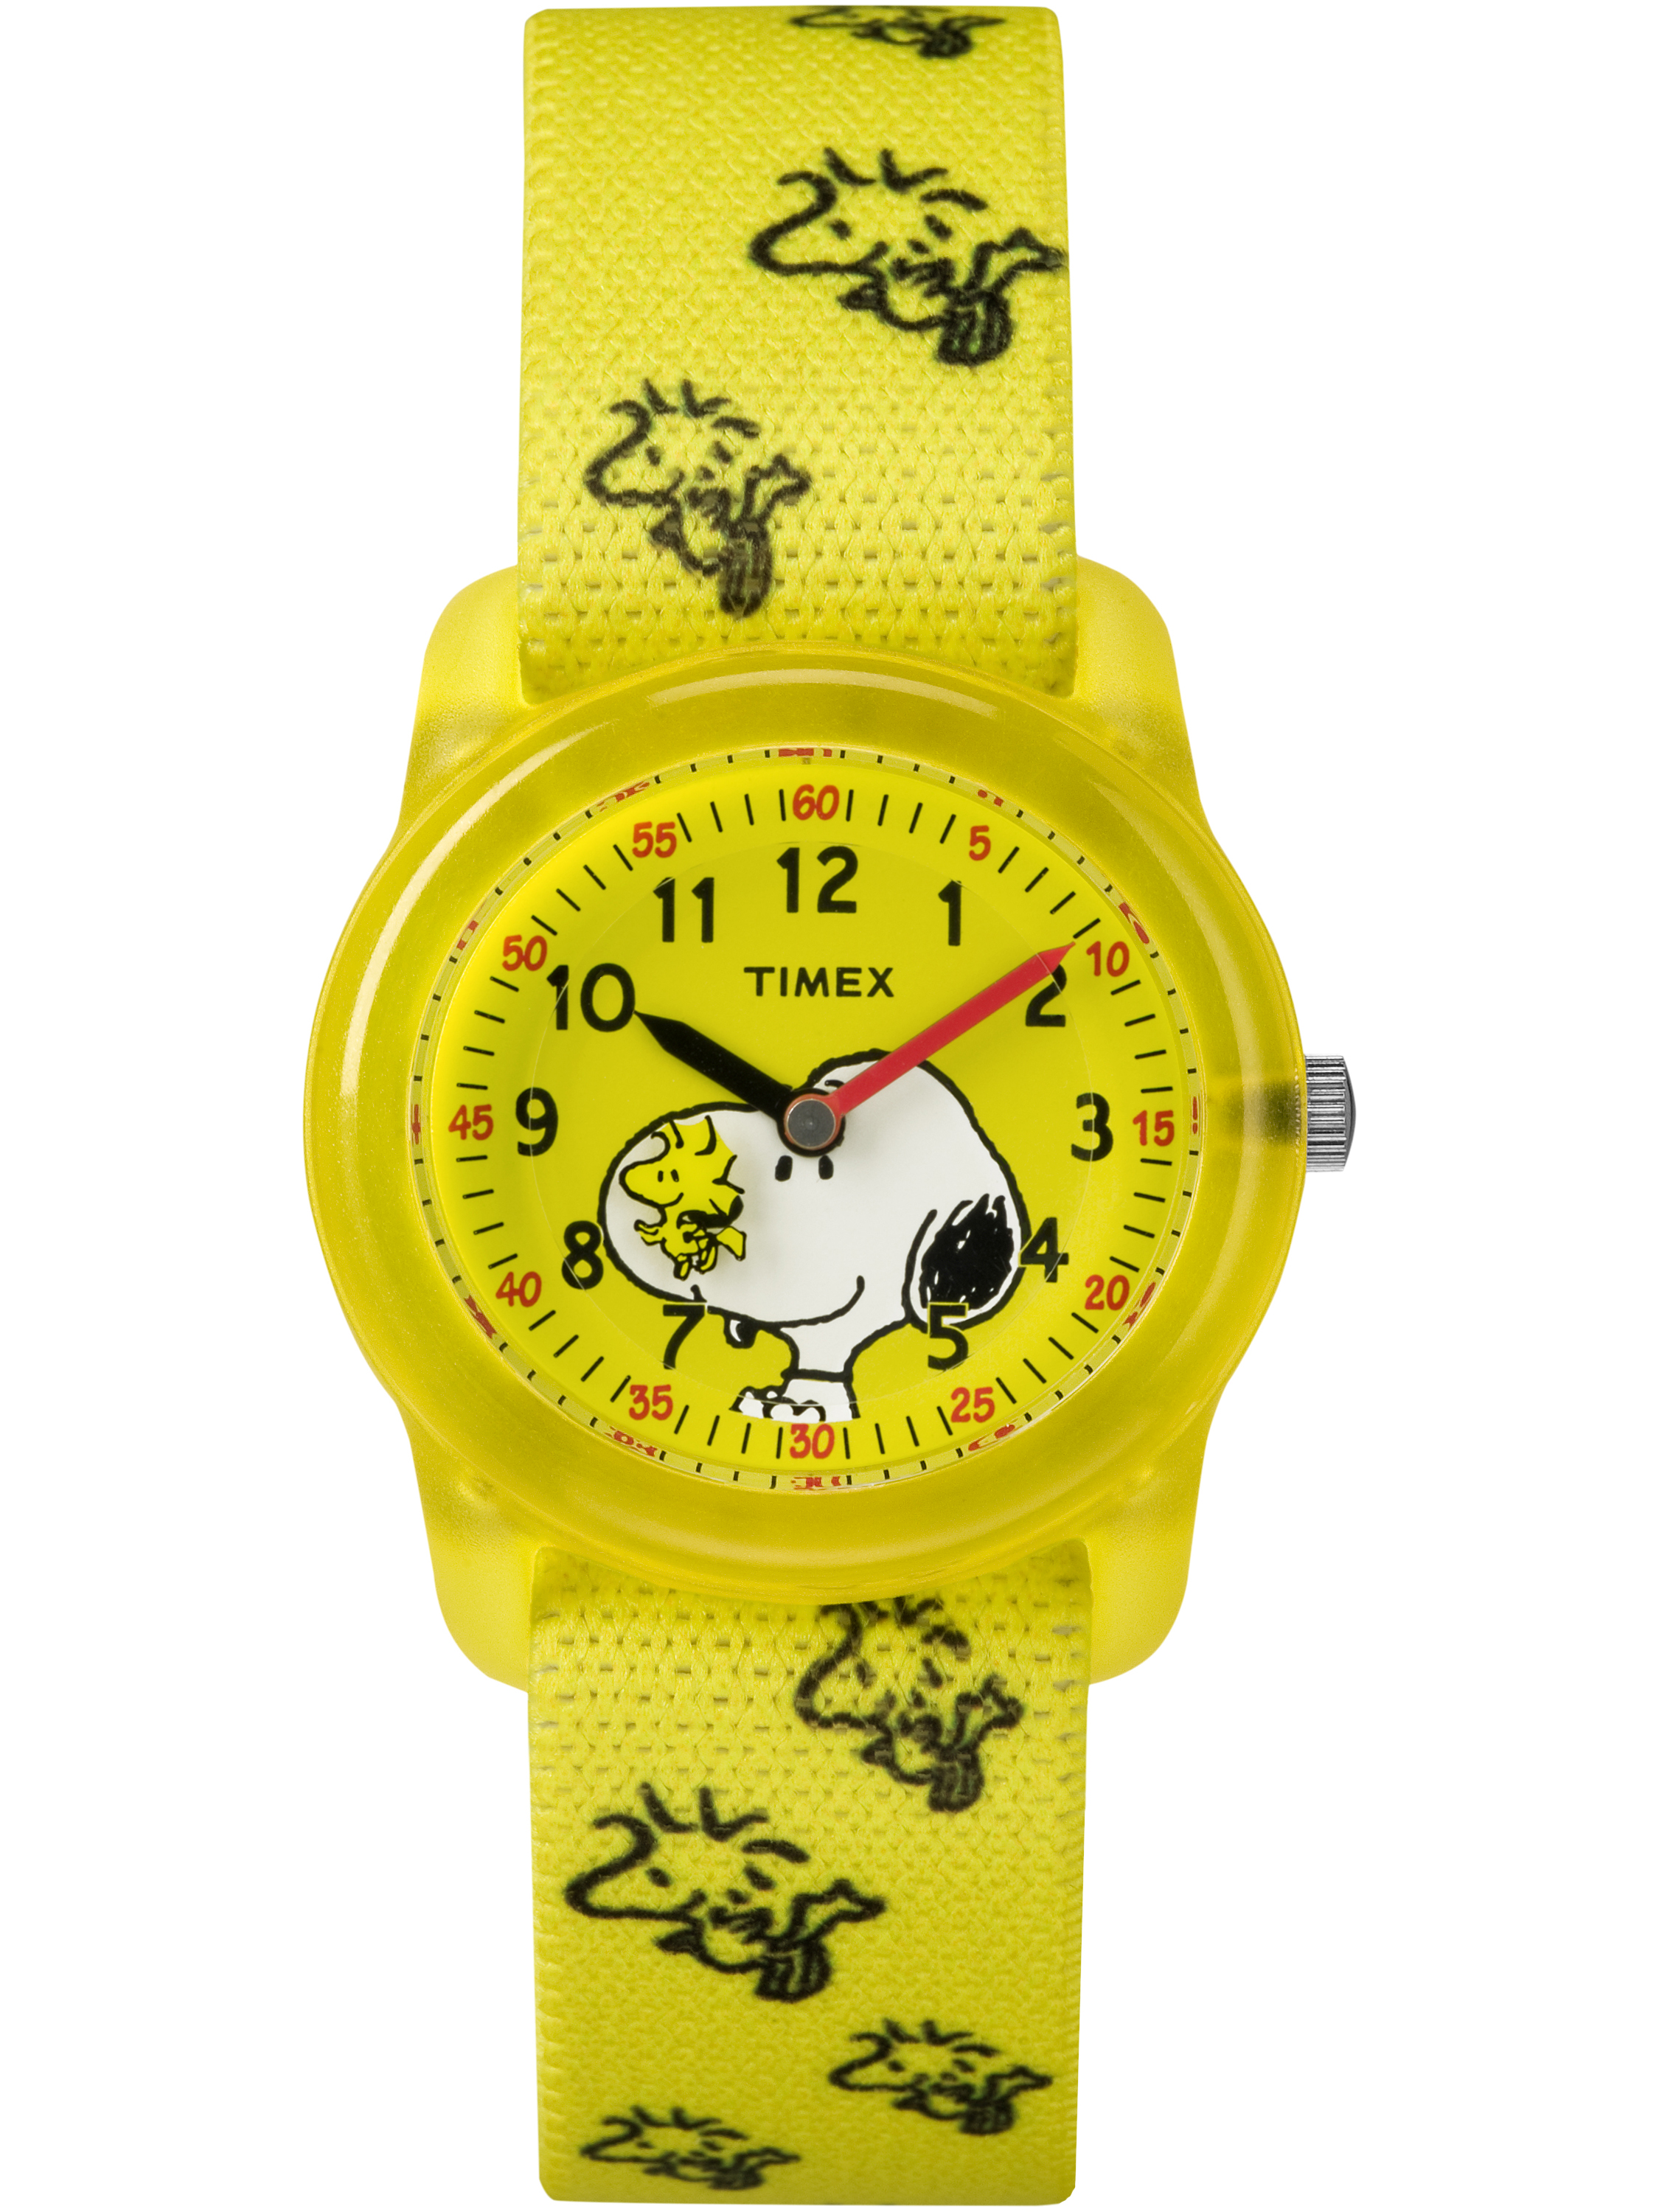 Timex Kids Time Machines x Peanuts: Snoopy & Woodstock Watch, Elastic Fabric Strap